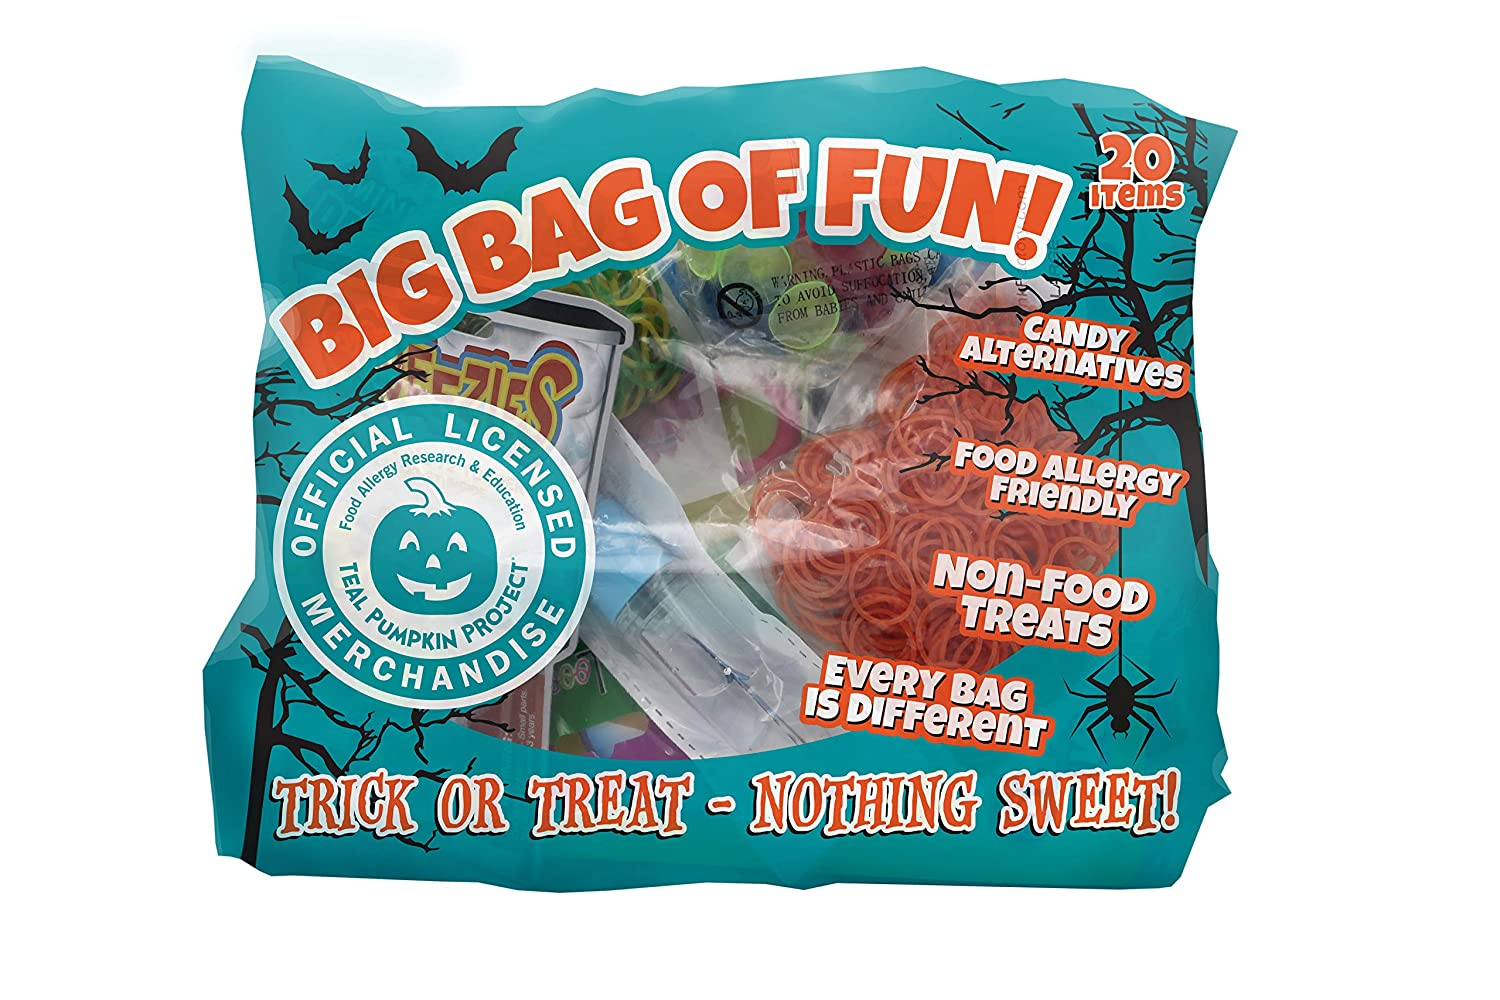 Just For Laughs Big Bag of Fun Teal Pumpkin Project Halloween Party Favors 20 items